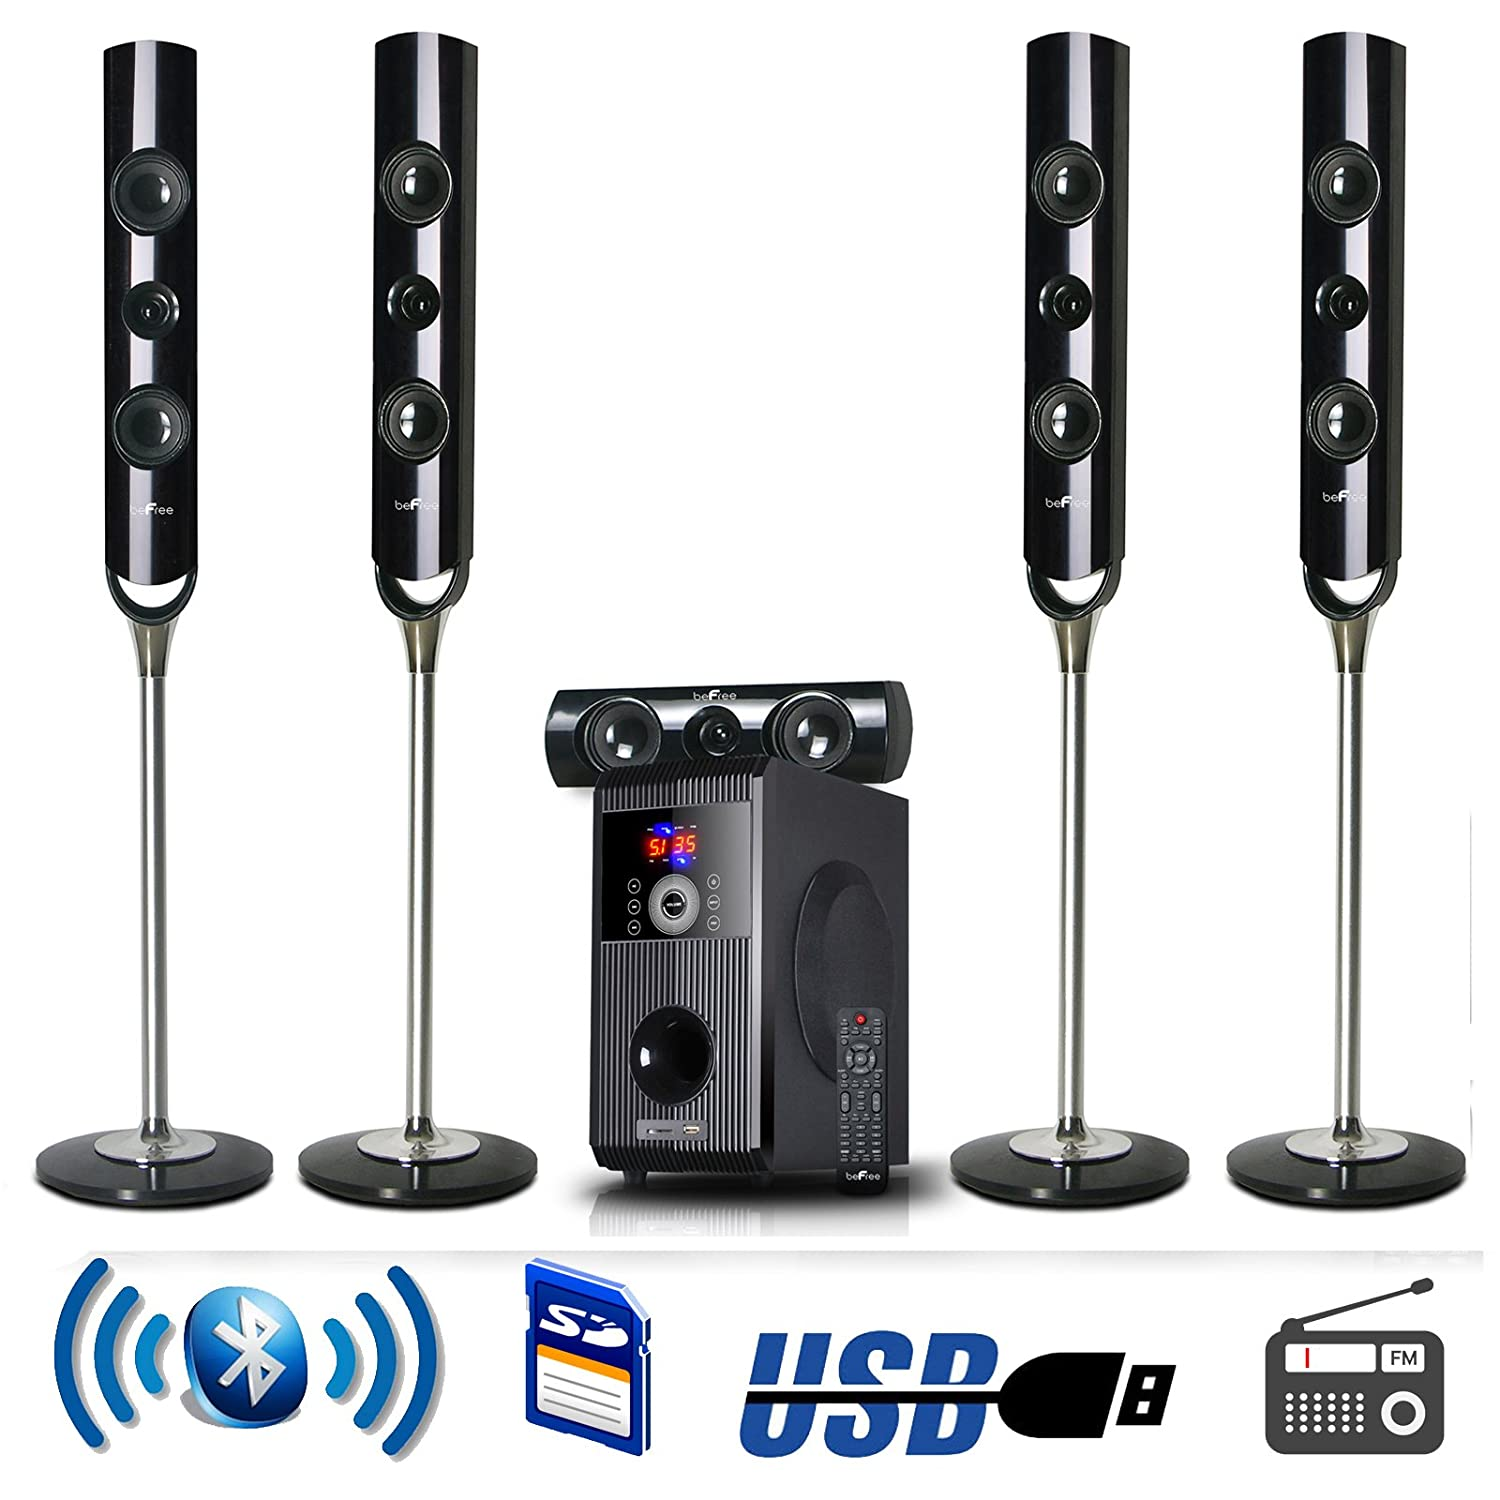 Details about NEW 5 1 CHANNEL HOME SURROUND SOUND THEATER SPEAKER SYSTEM  BLUETOOTH STREAMING